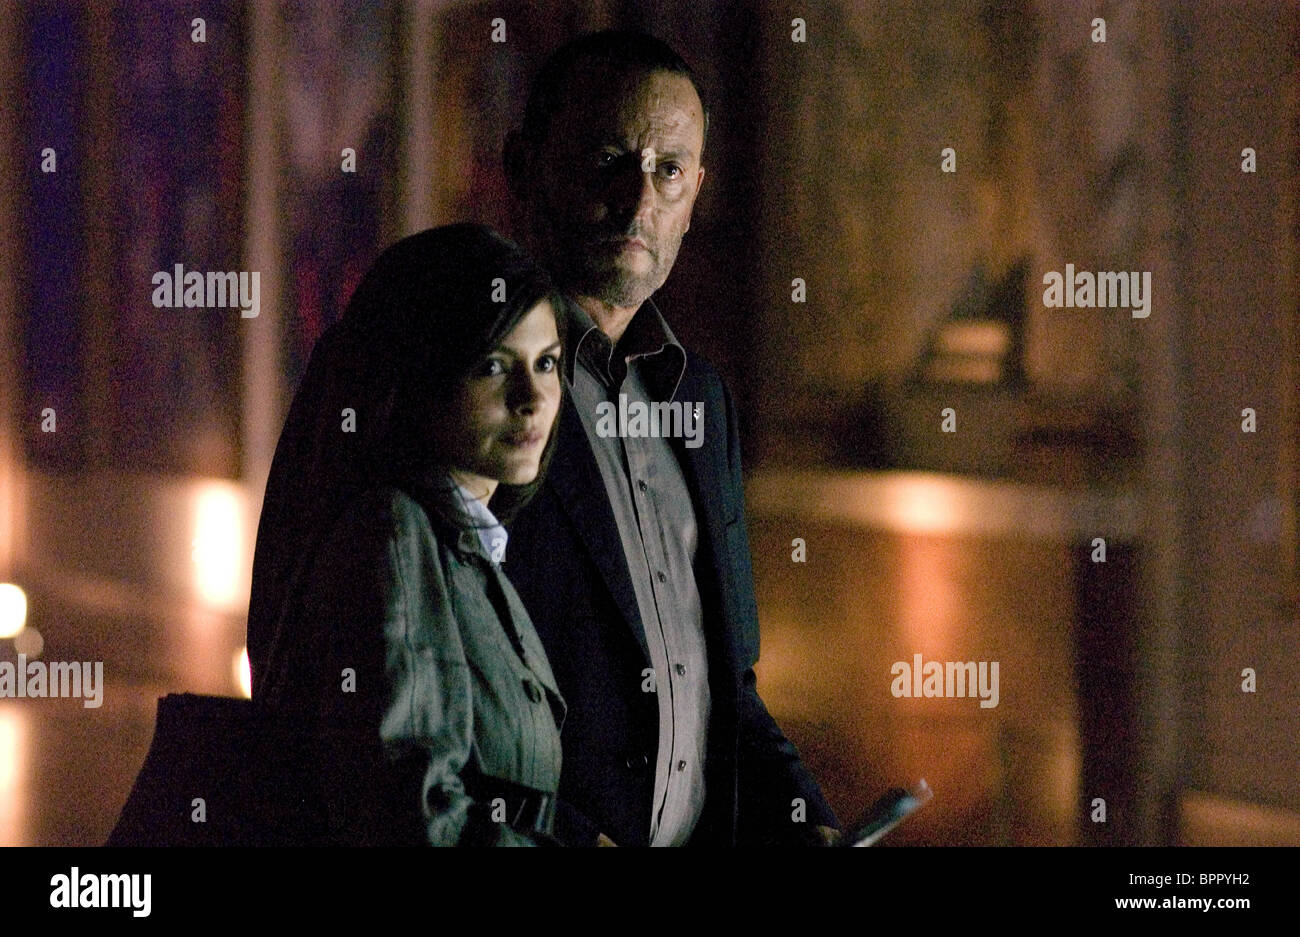 Audrey Tautou Jean Reno The Da Vinci Code 2006 Stock Photo Alamy